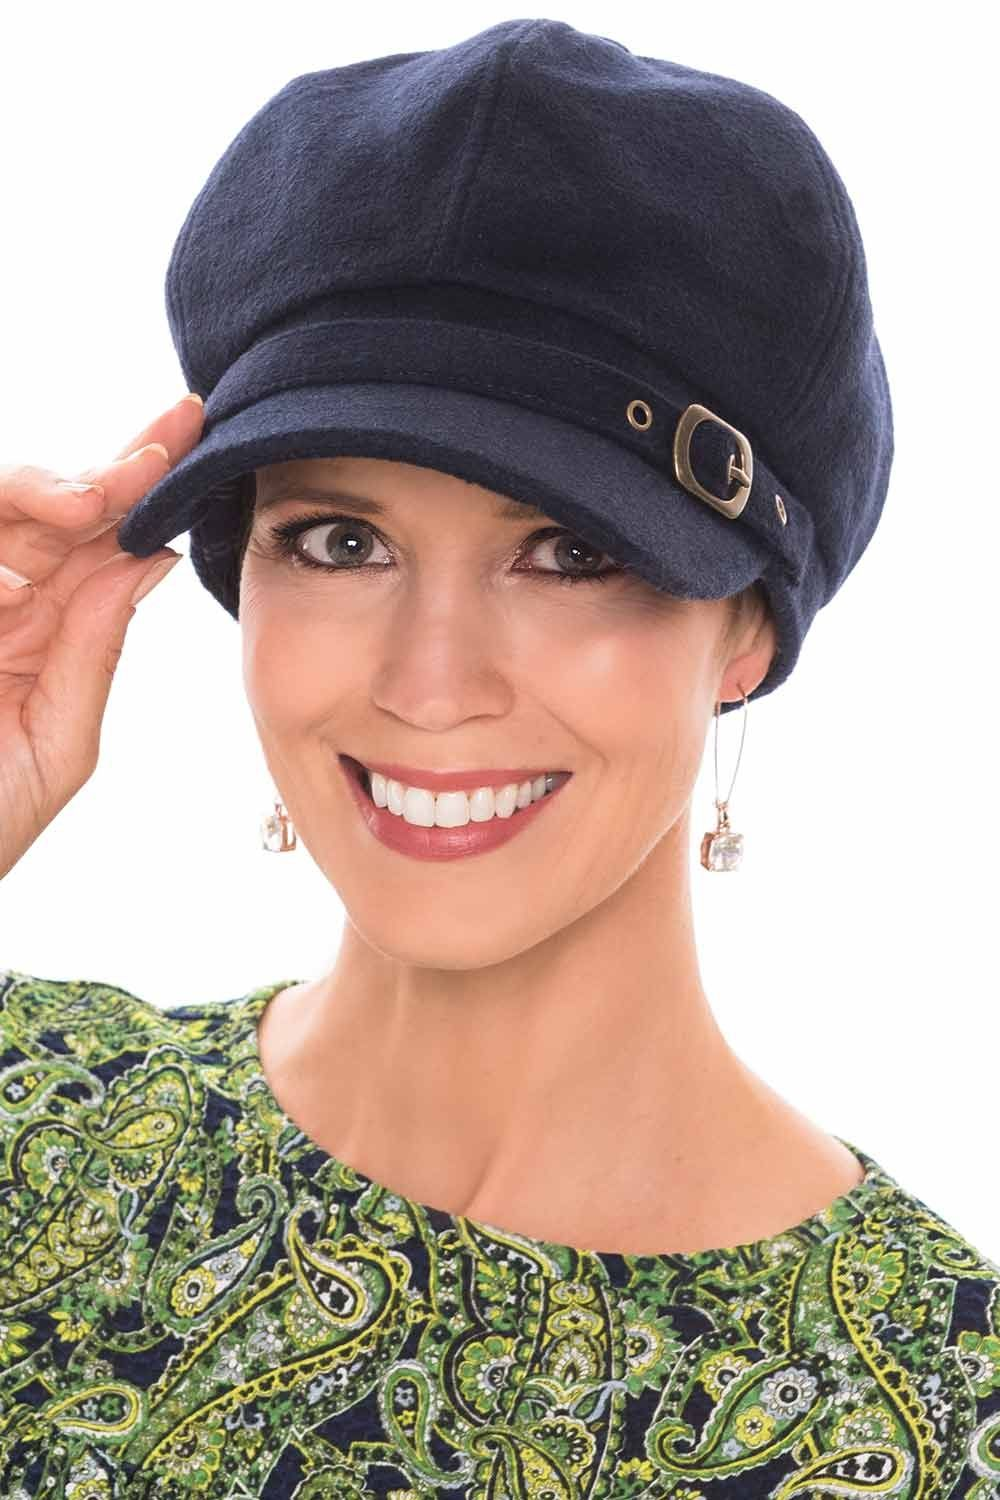 Large Brette Newsboy Hat | Cap for Women with Large Head Sizes